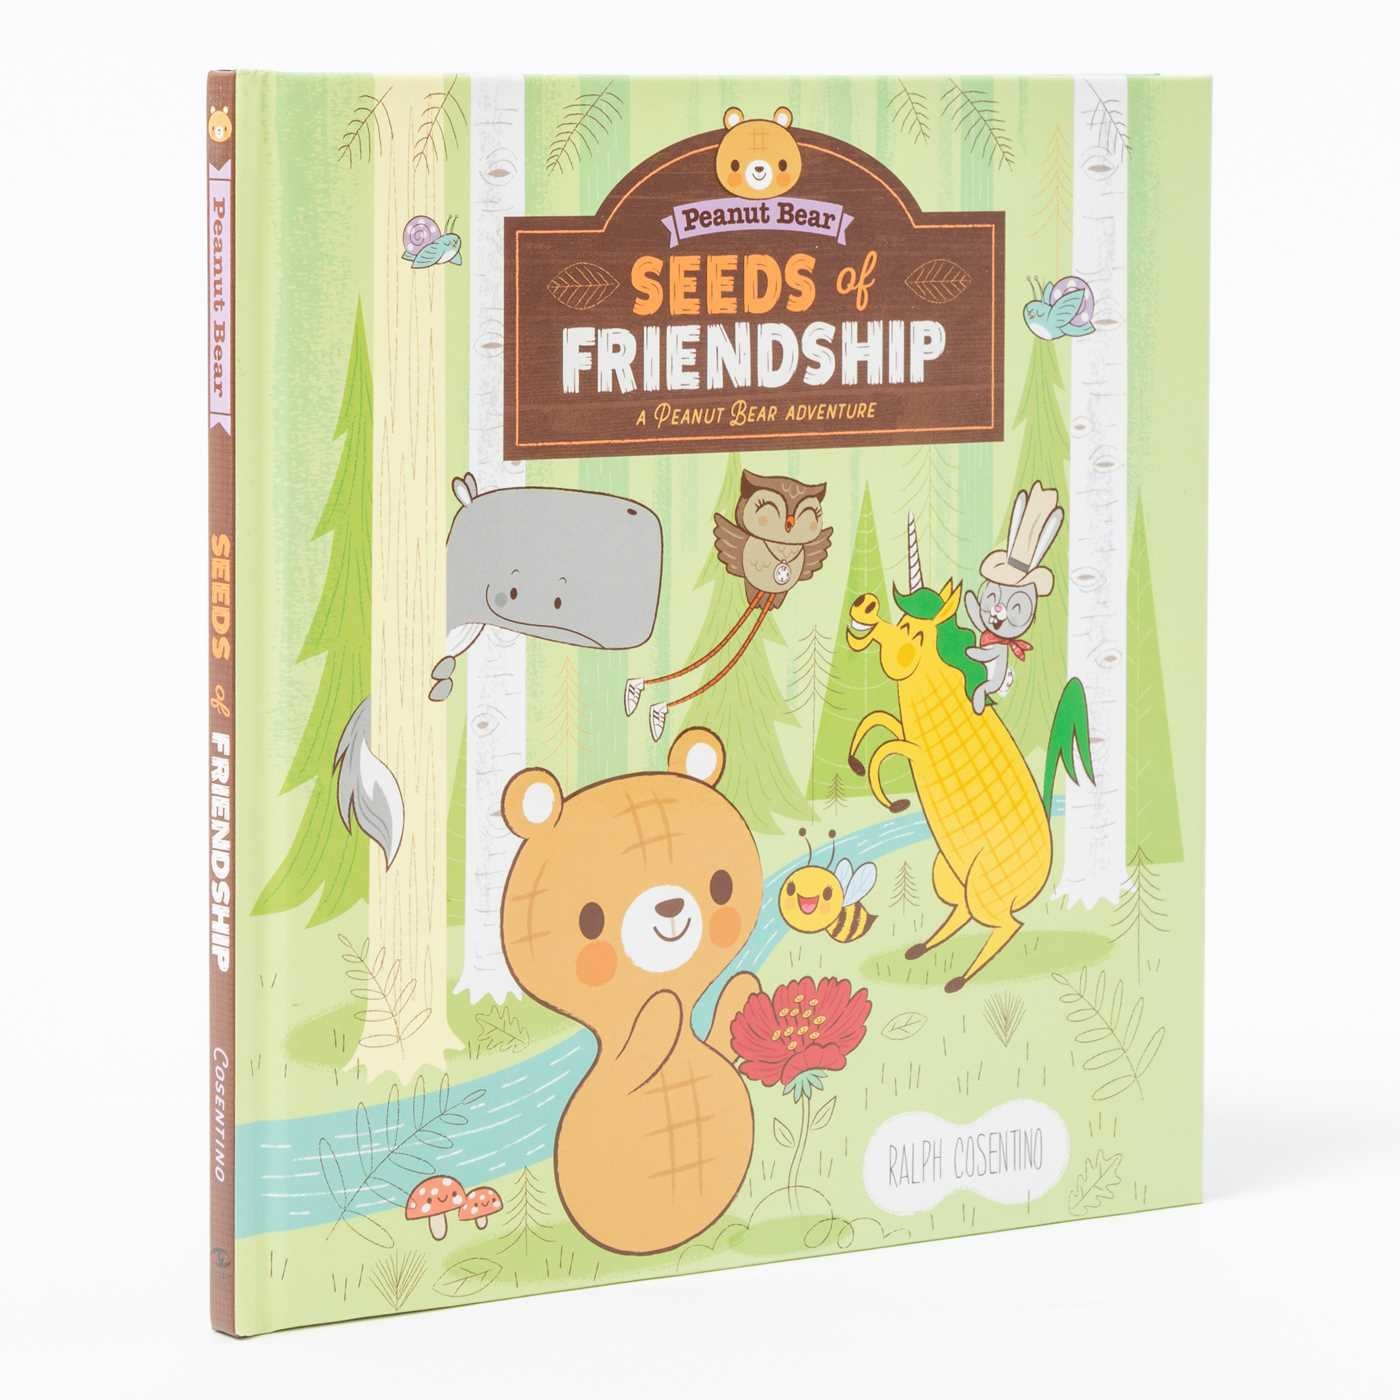 Seeds of friendship 9781683832348.in05